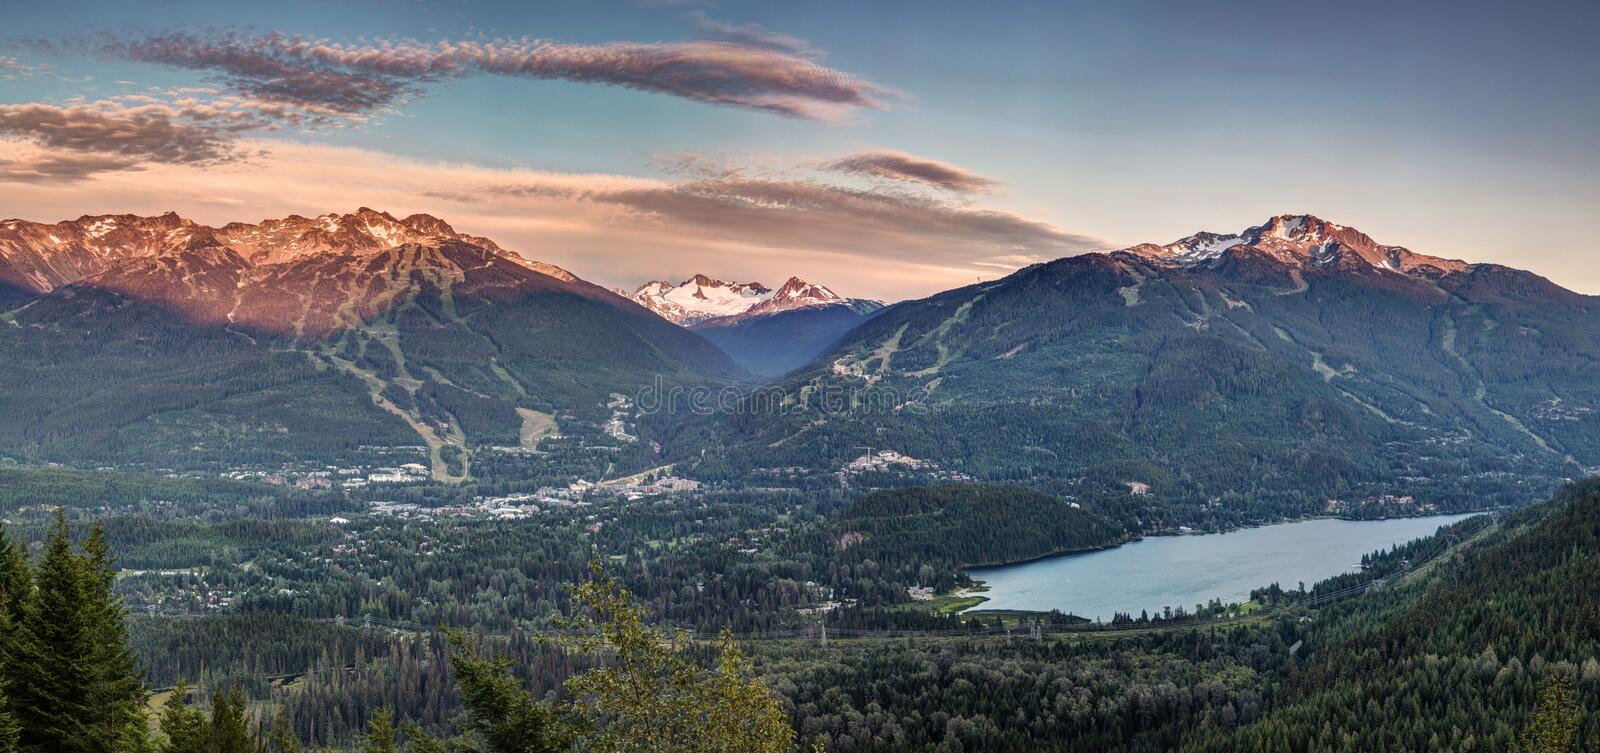 Whistler Blackcomb sunset Panorama. 12 exposures to create this panoramic photo of Whistler Blackcomb at sunset. I was waiting for the traffic to subside before royalty free stock images